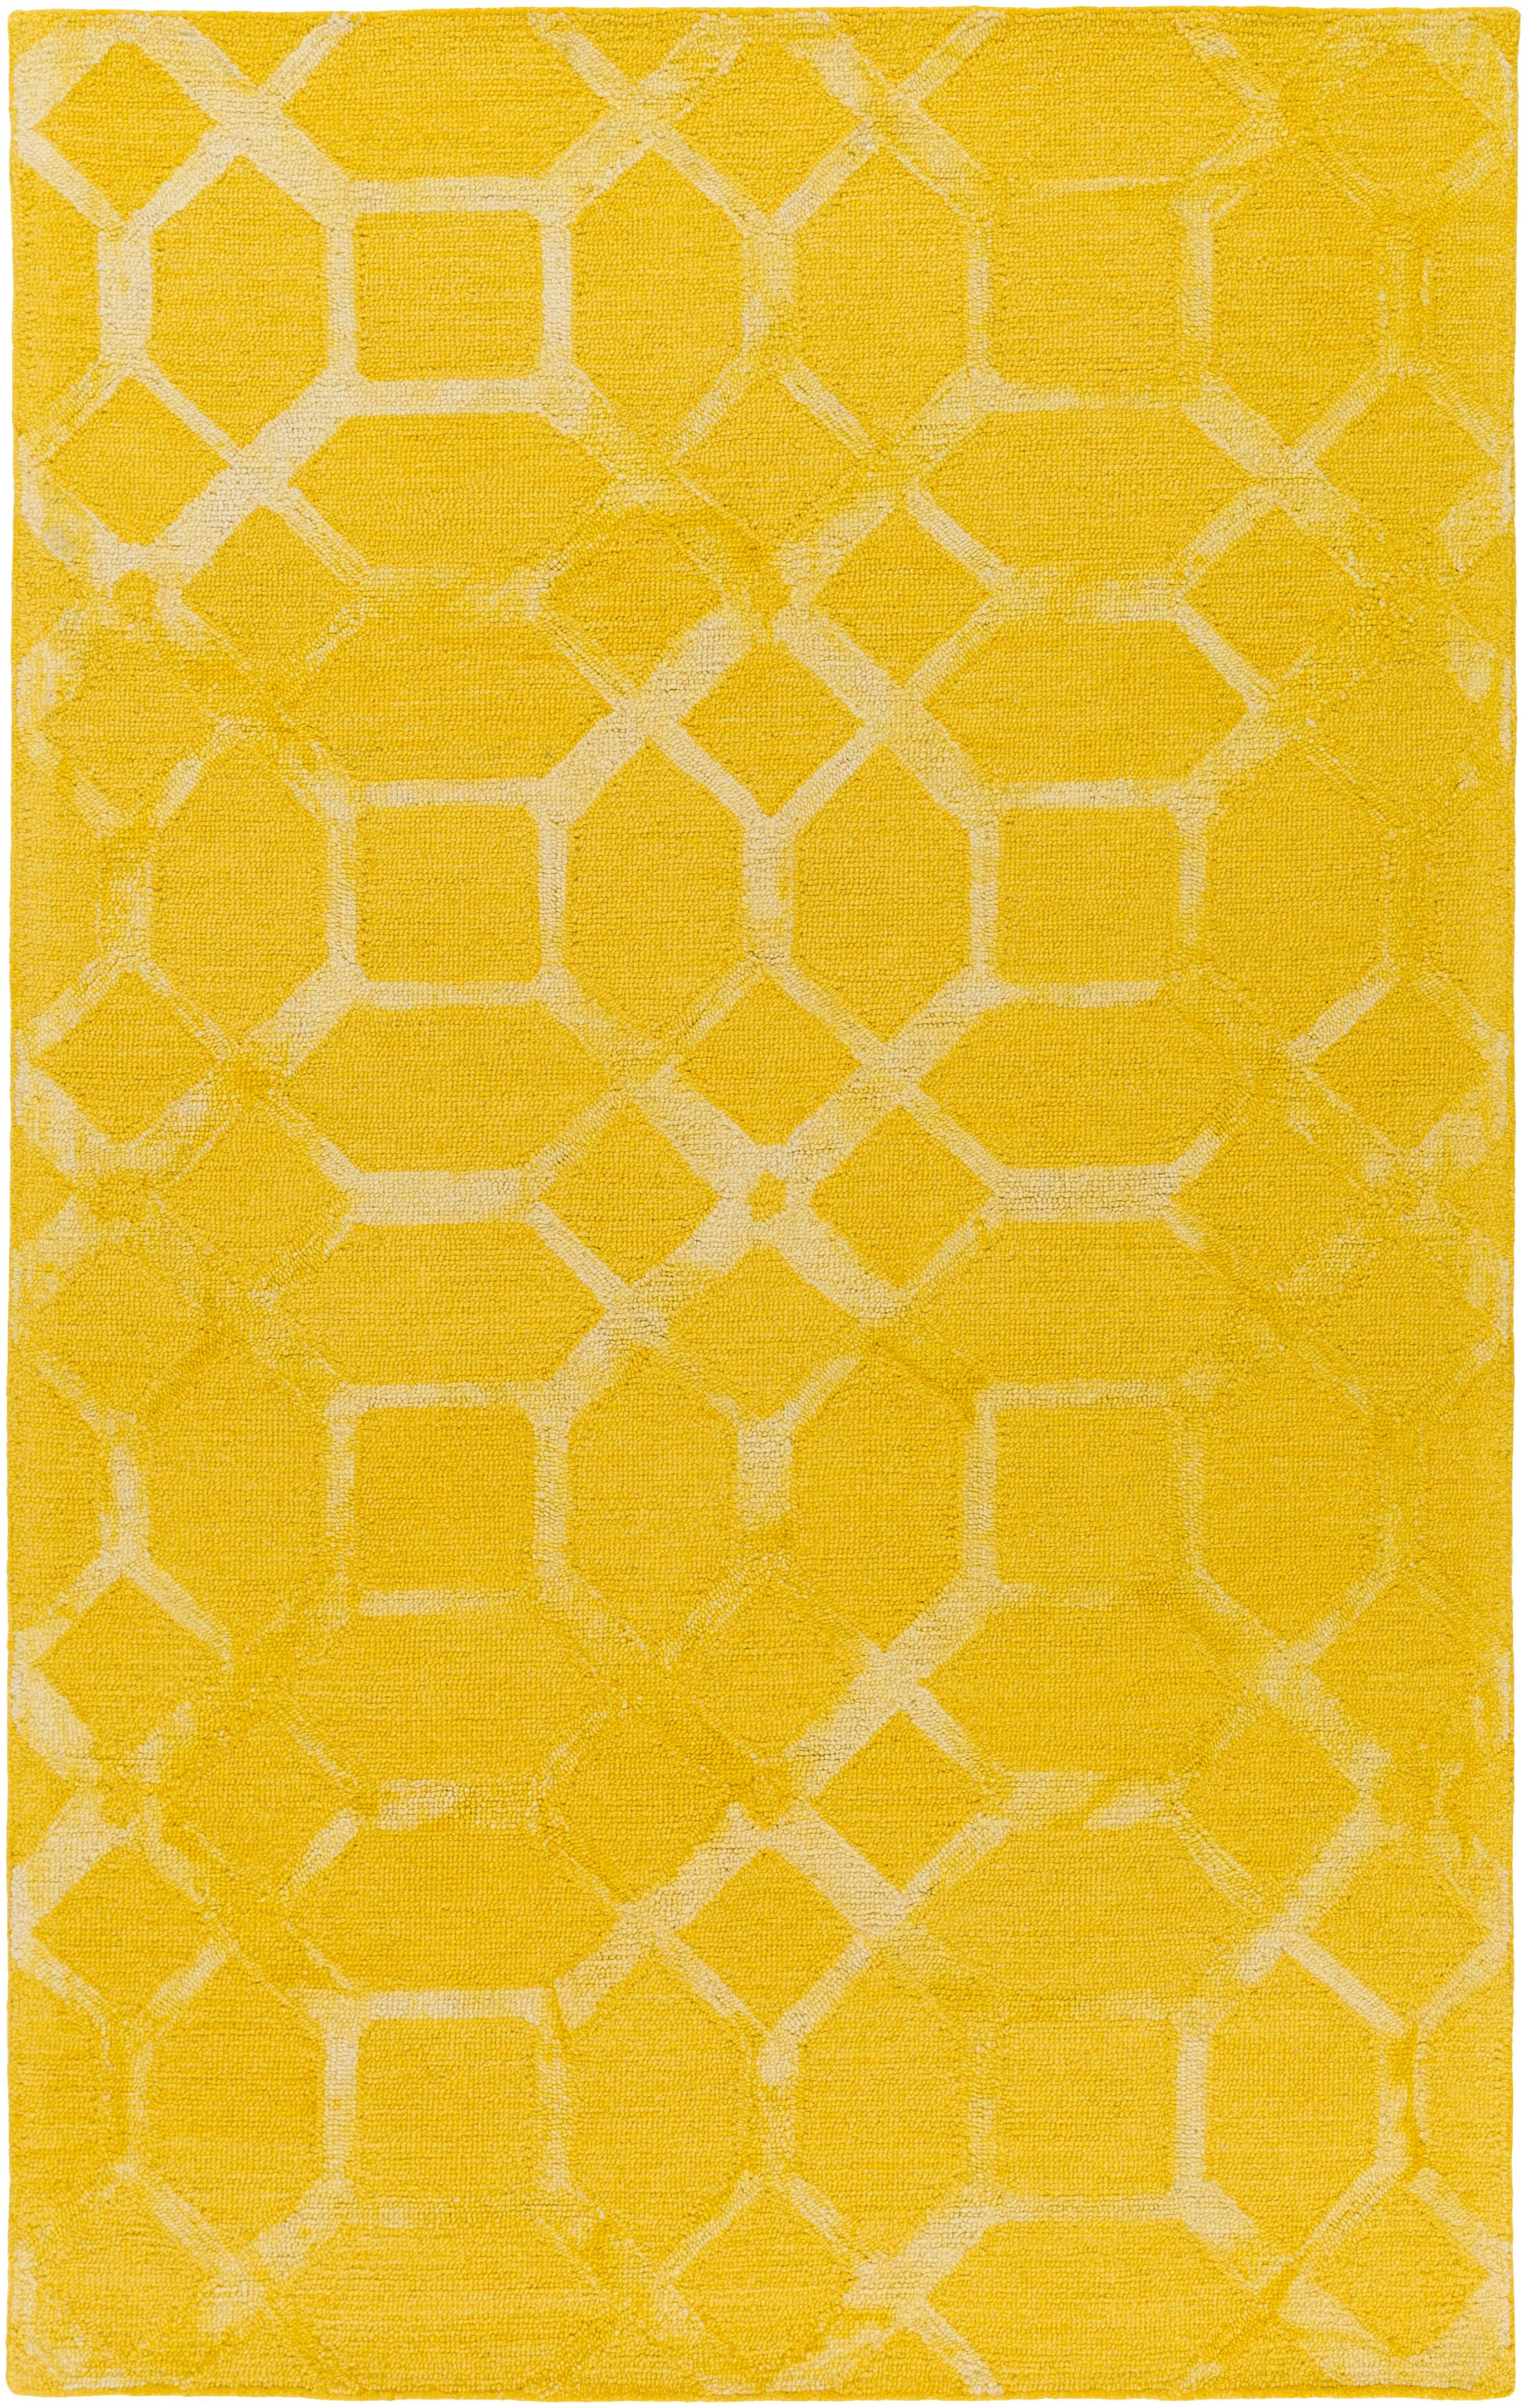 Glenmore Hand-Tufted Sunflower Area Rug Rug Size: Rectangle 4' x 6'